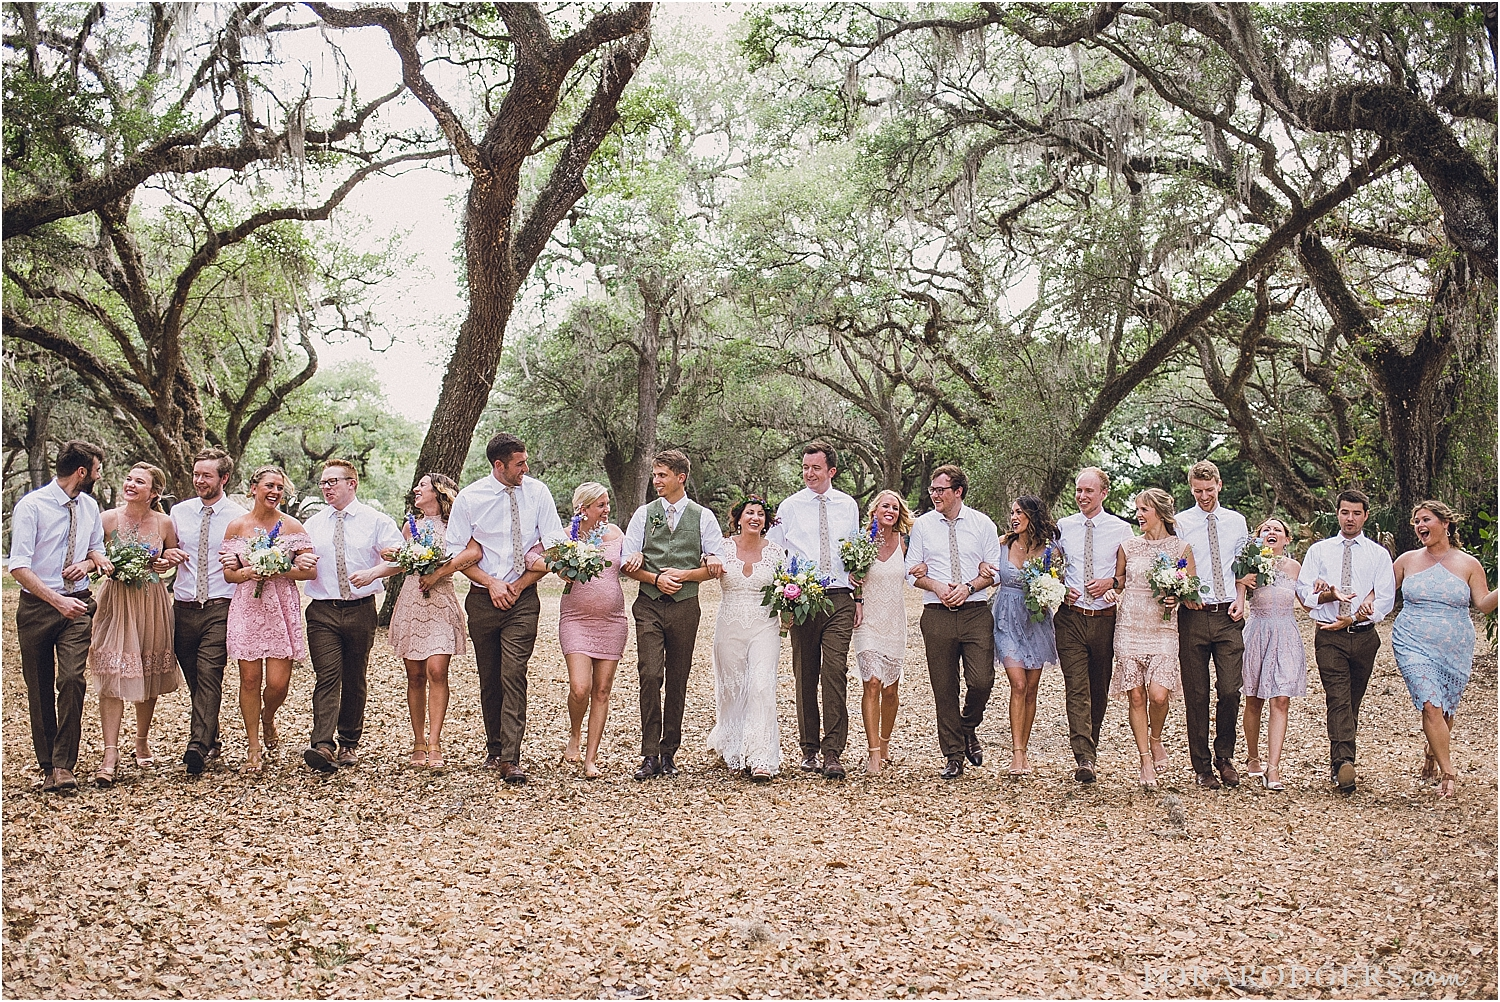 Bird Island Lake Ranch Date City Florida Wedding Day